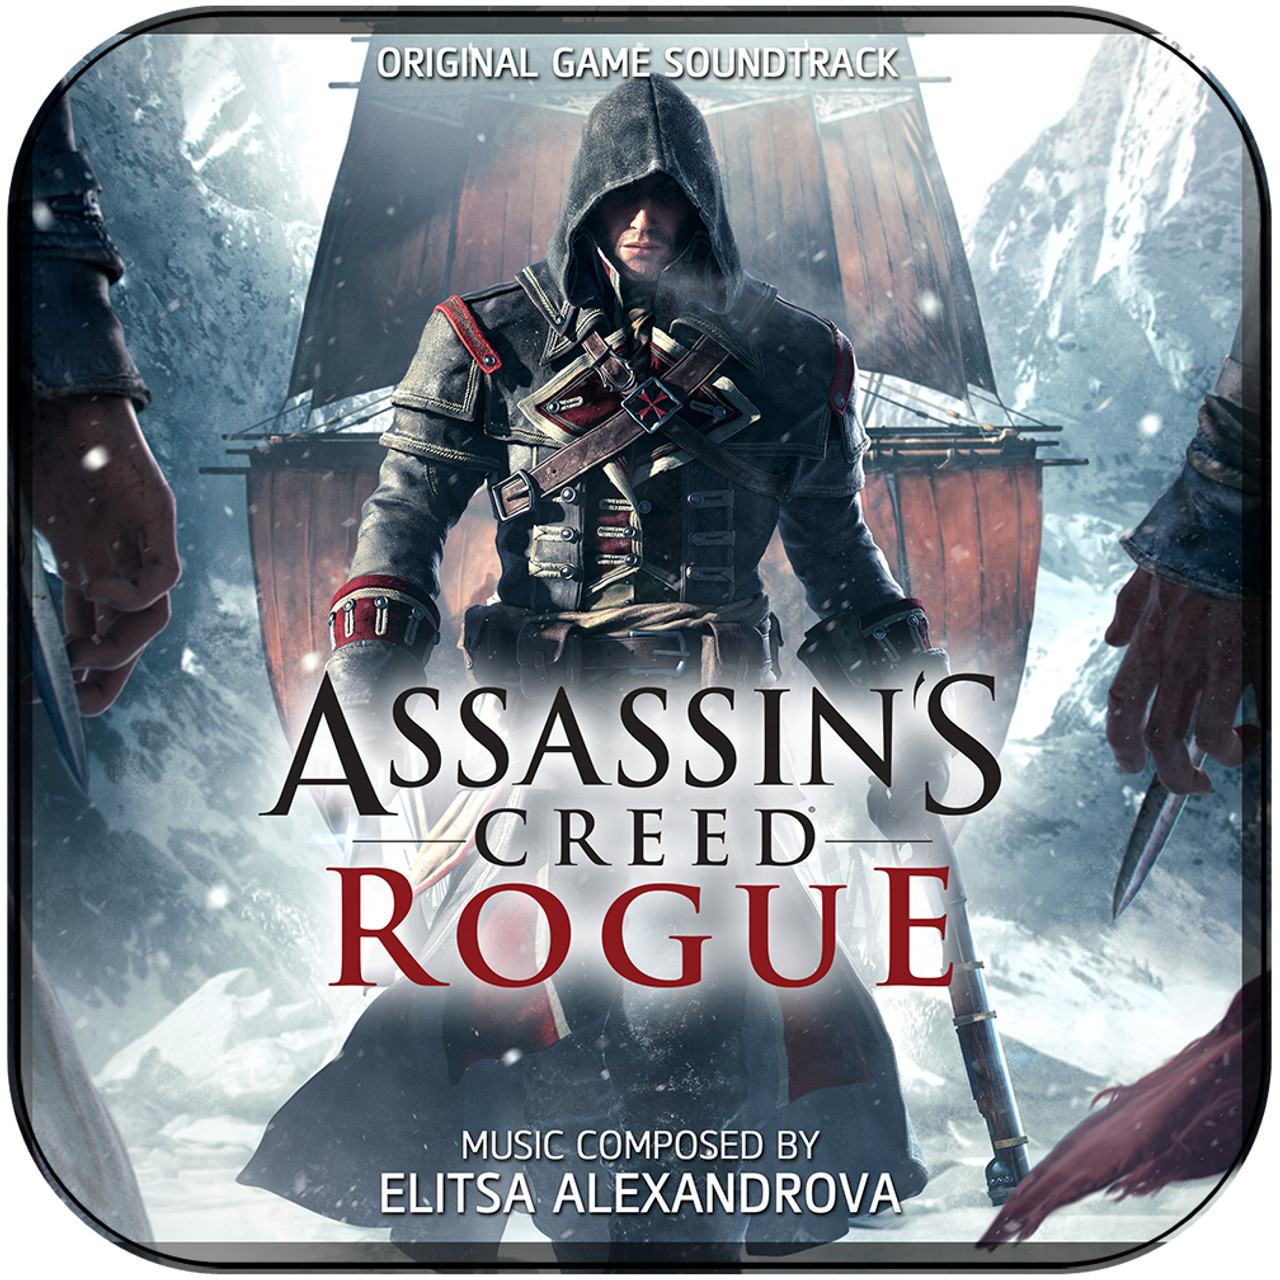 Elitsa Alexandrova Assassins Creed Rogue Original Game Soundtrack